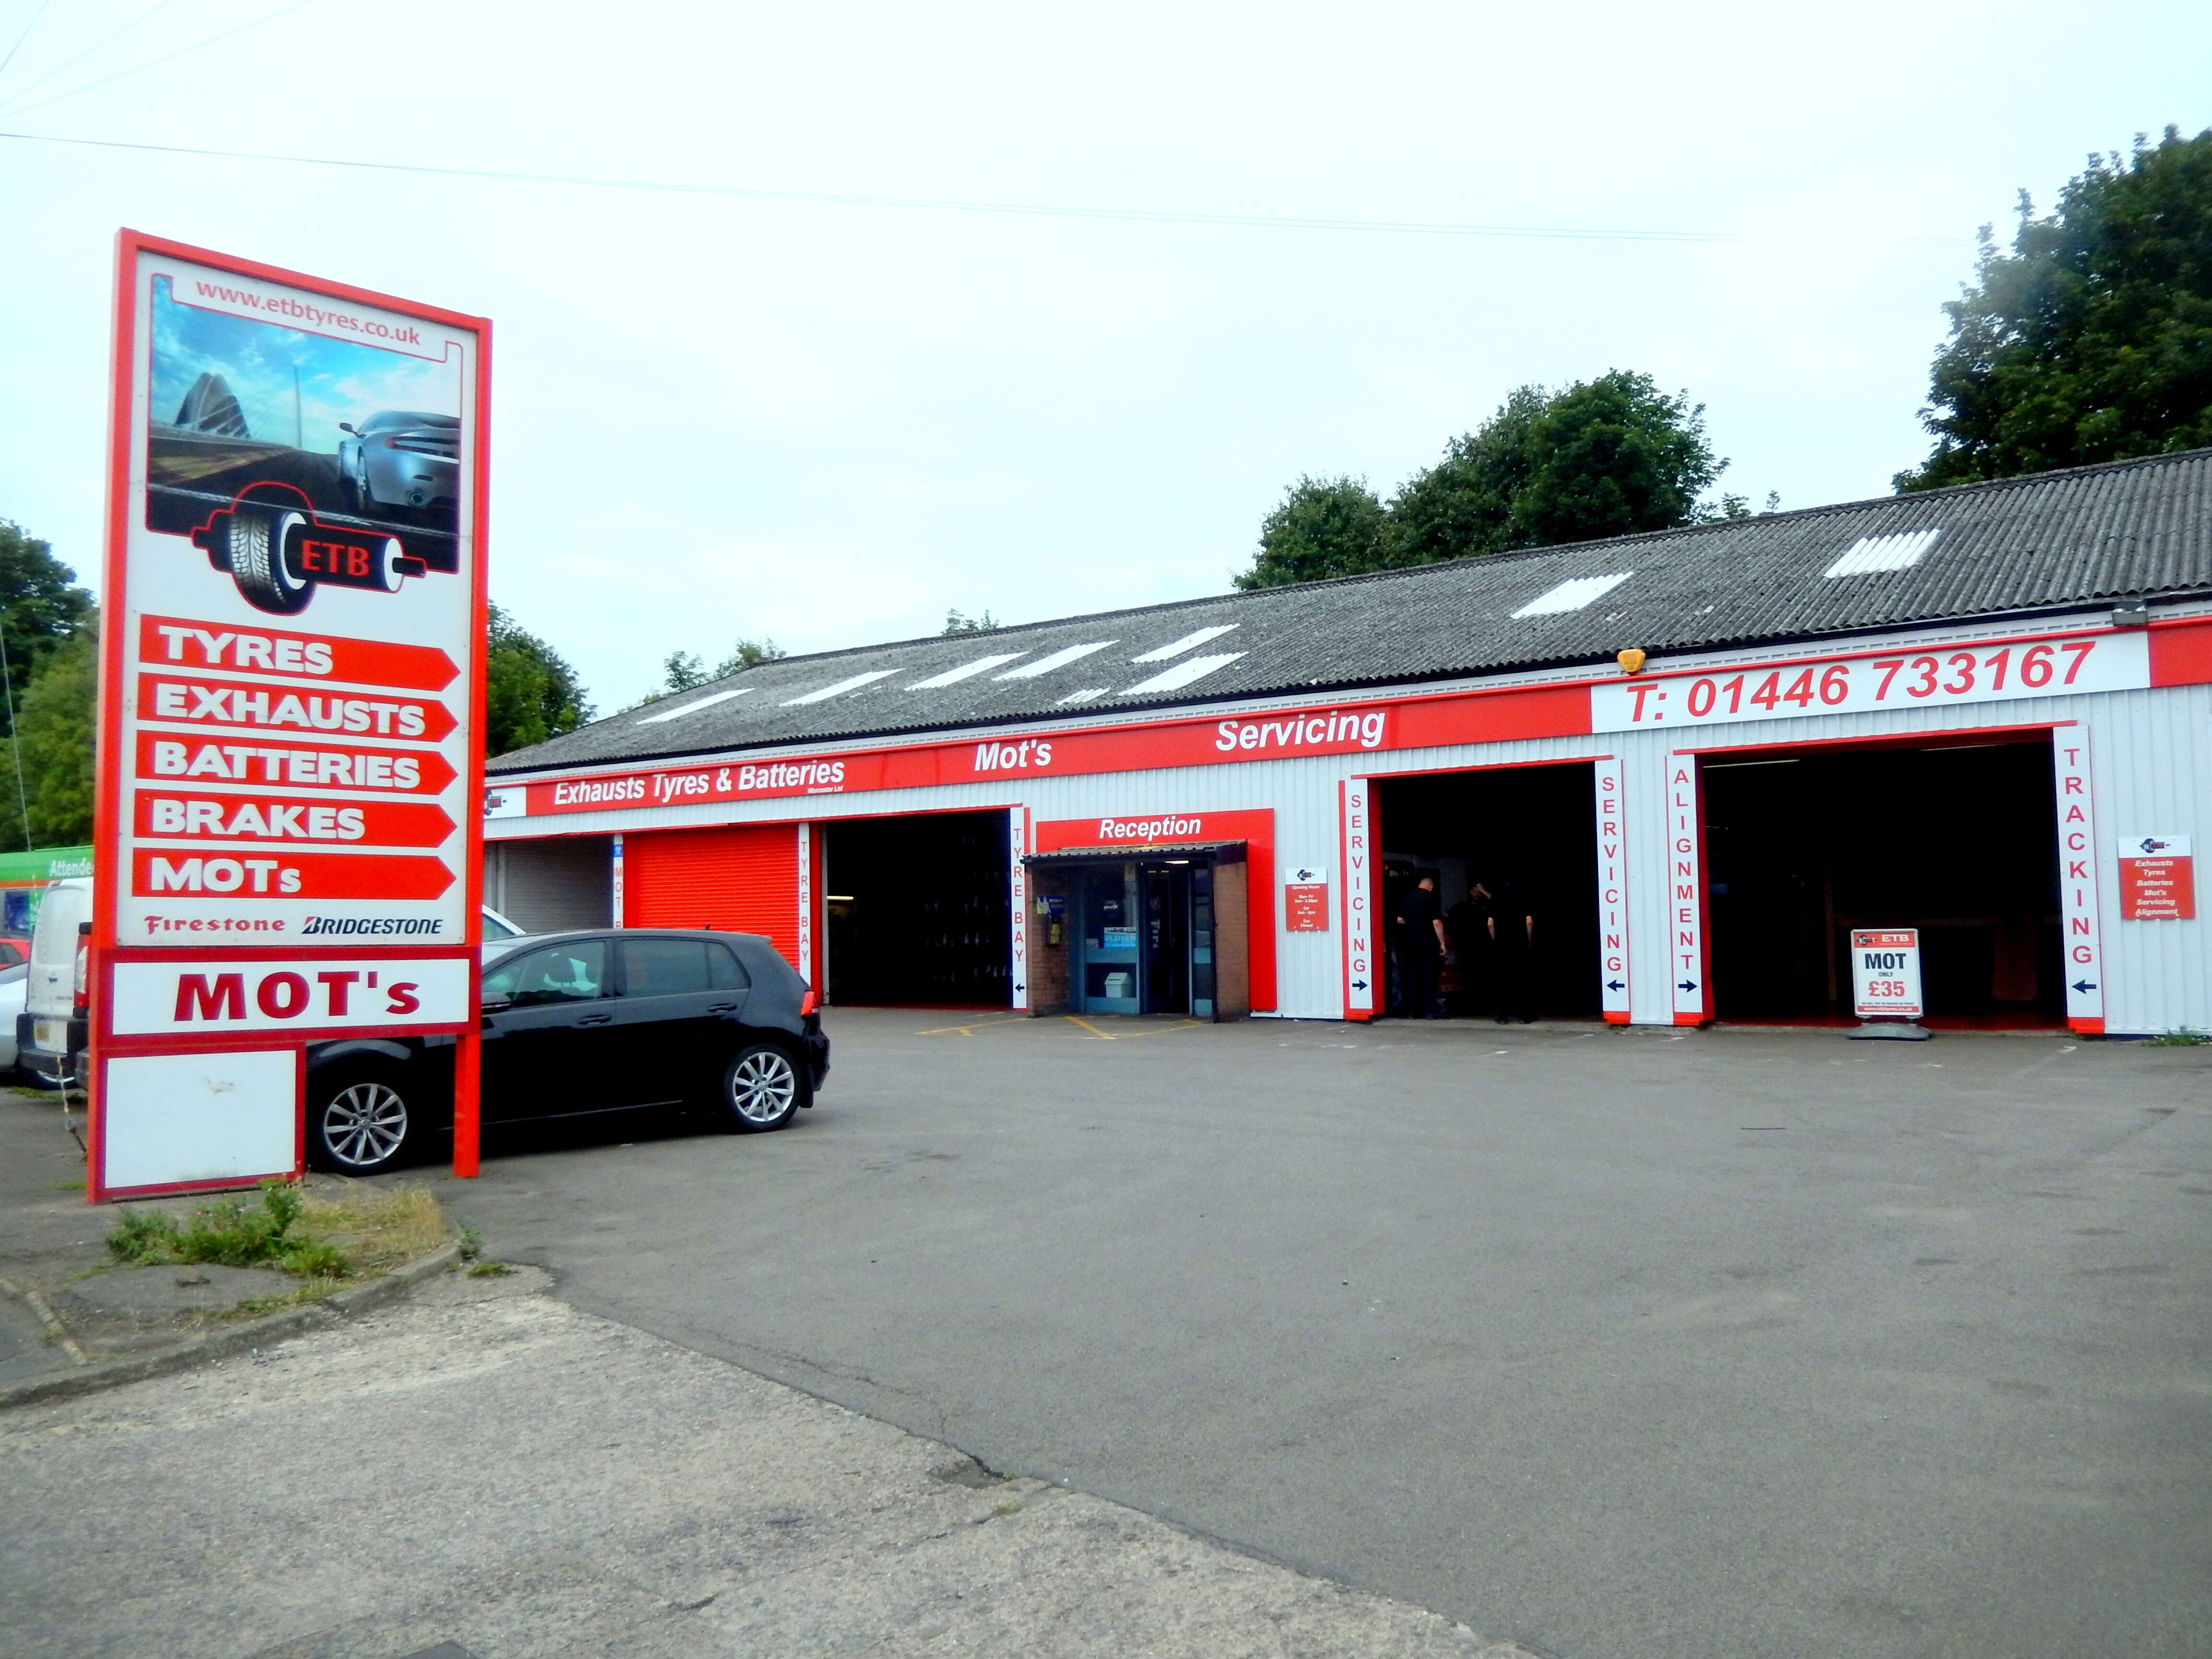 Exhausts Tyres and Batteries in Worcester